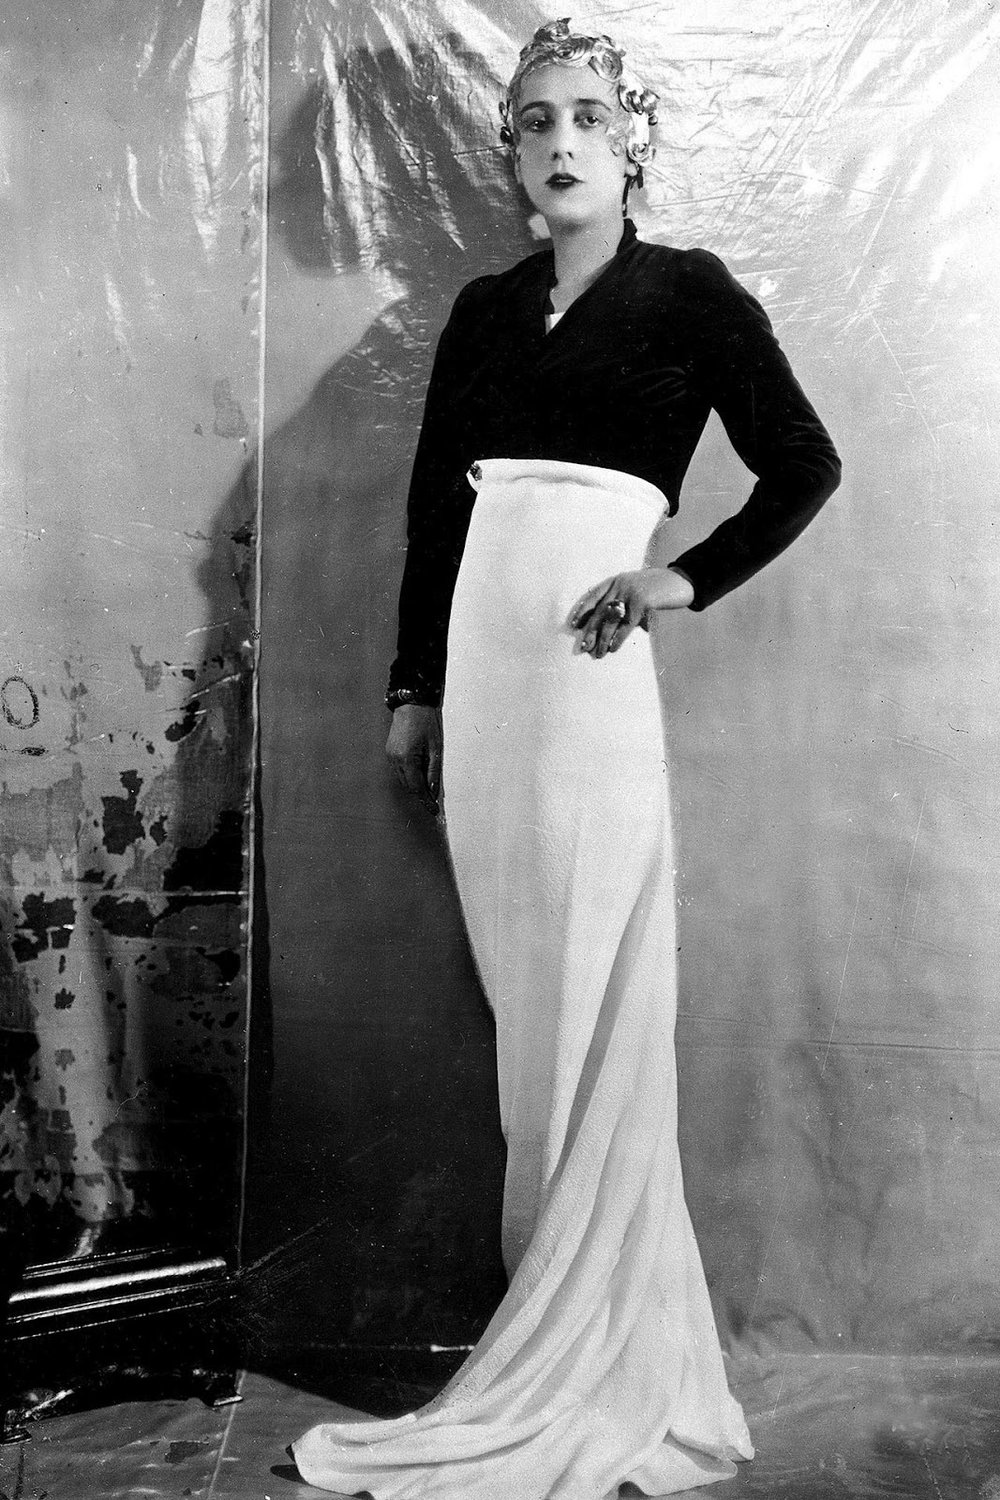 elsa-schiaparelli-one-who-dresses.jpg